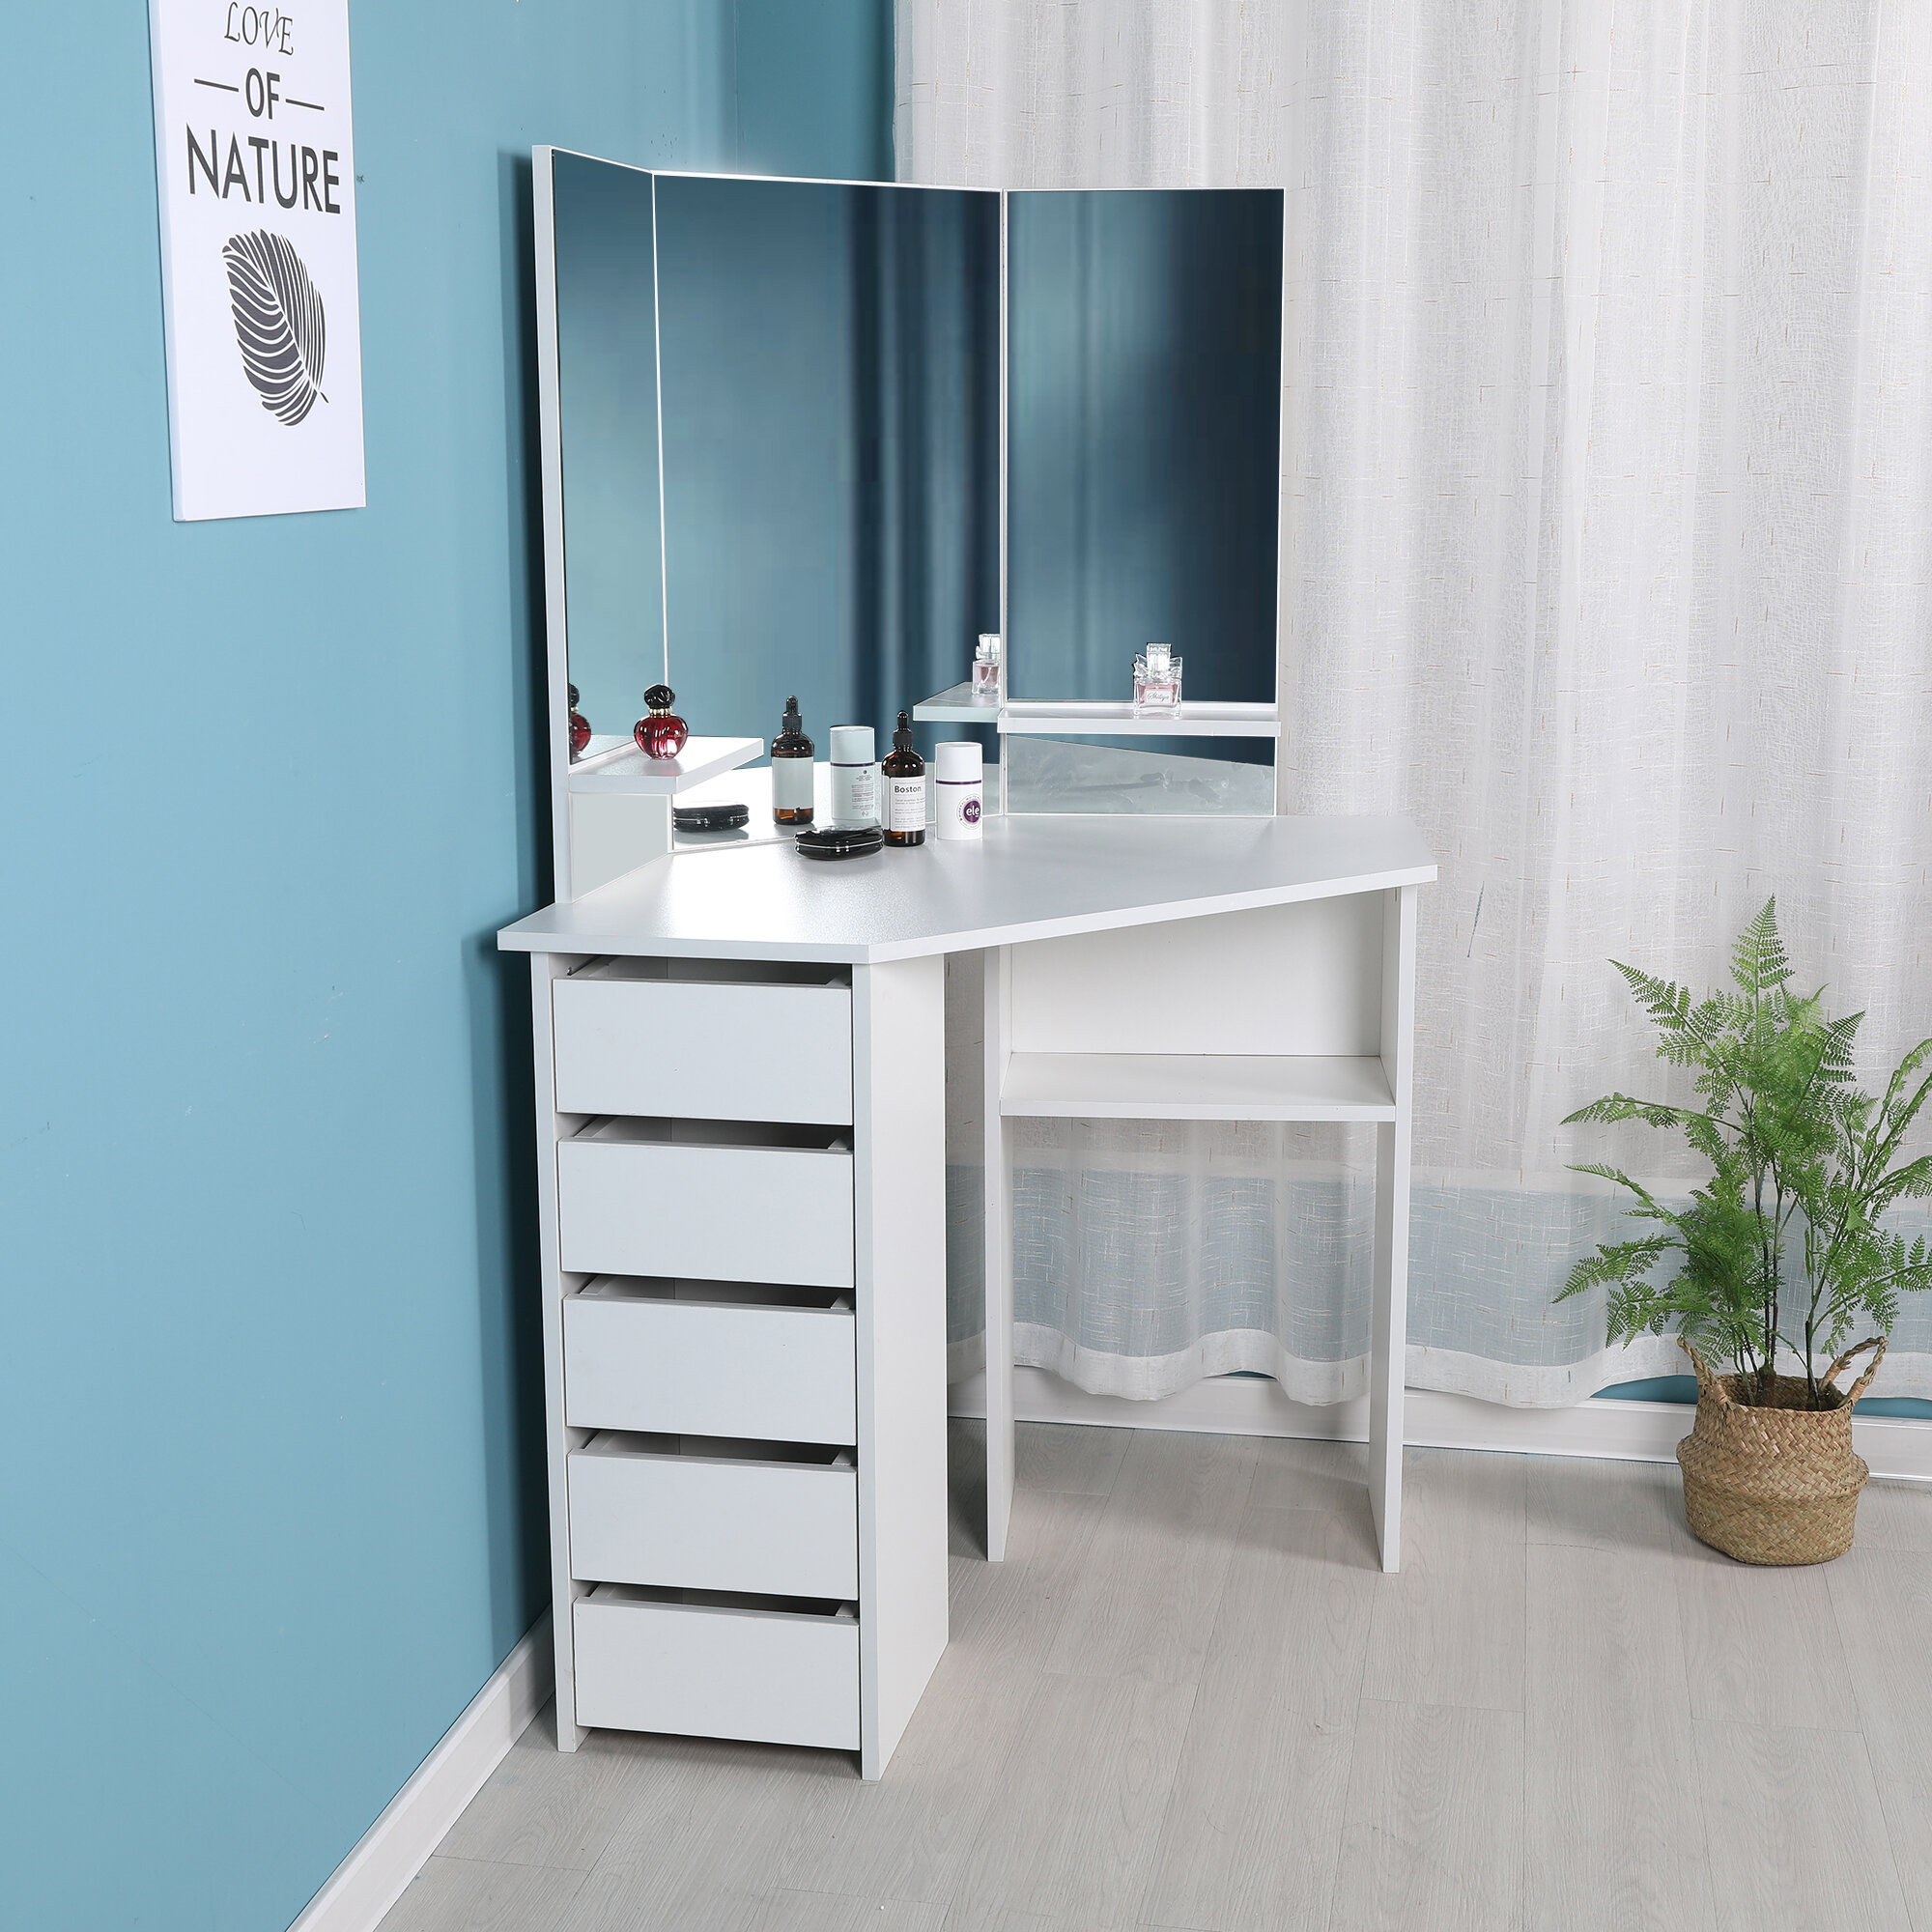 outlet store 43f8d c0b4f Cormier Corner Makeup Vanity with Mirror